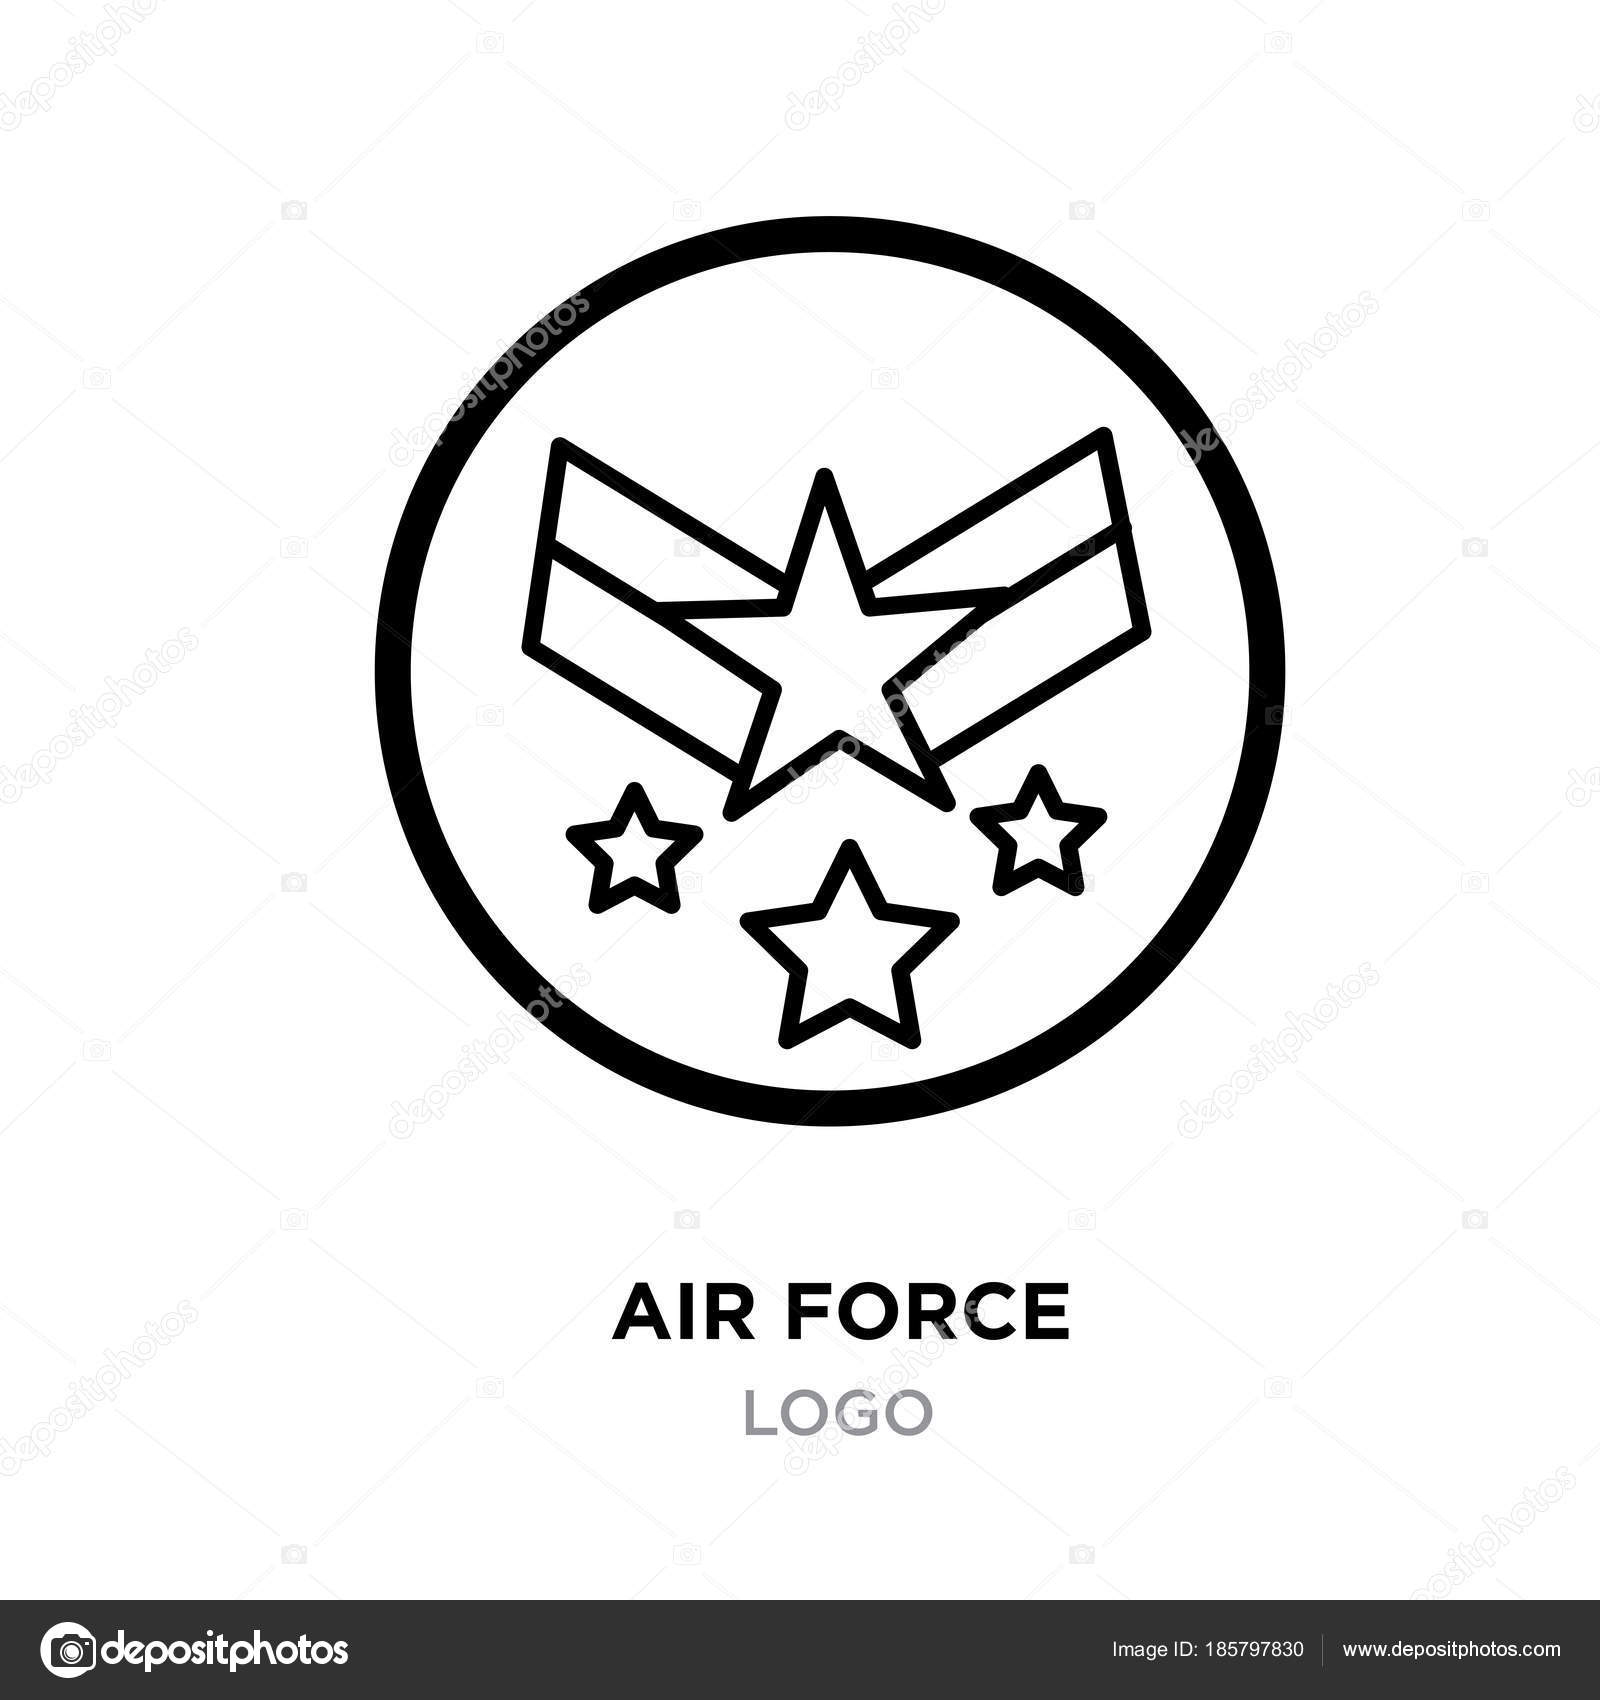 Air force logo images linear military emblem icon image with st air force logo images linear military emblem icon image with st stock vector voltagebd Images